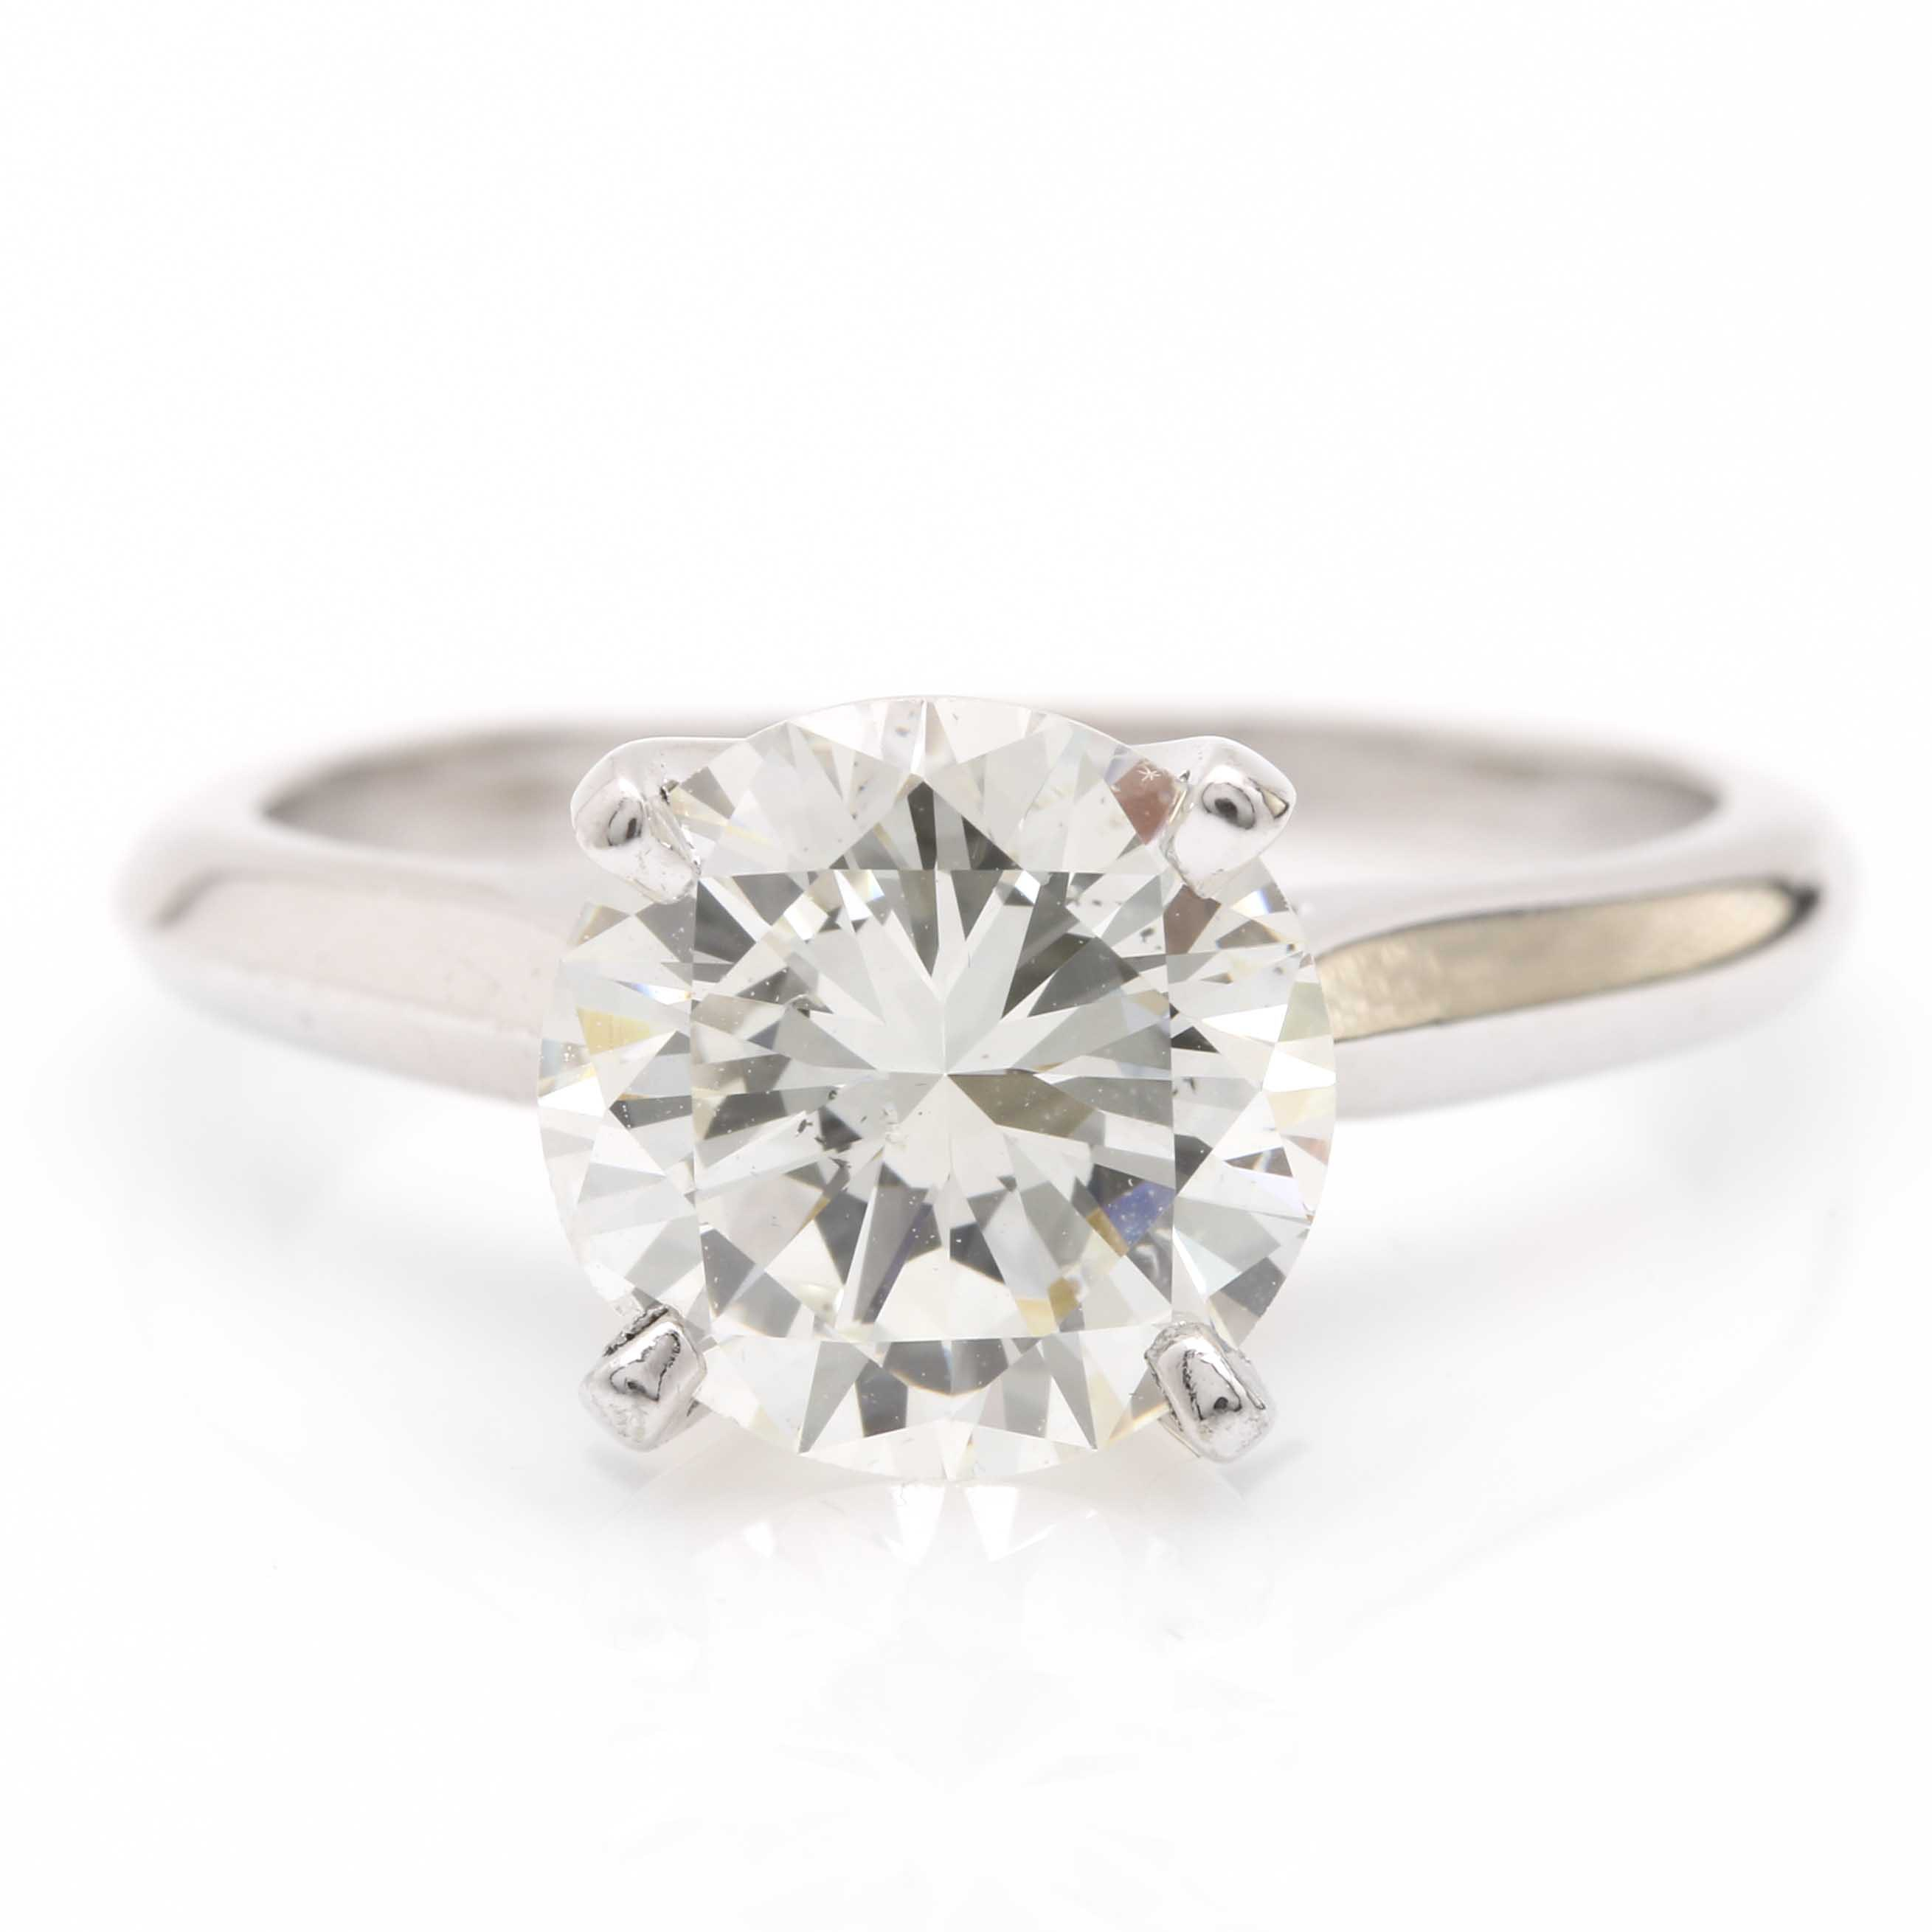 14K White Gold Solitaire 1.95 CTS Diamond Ring